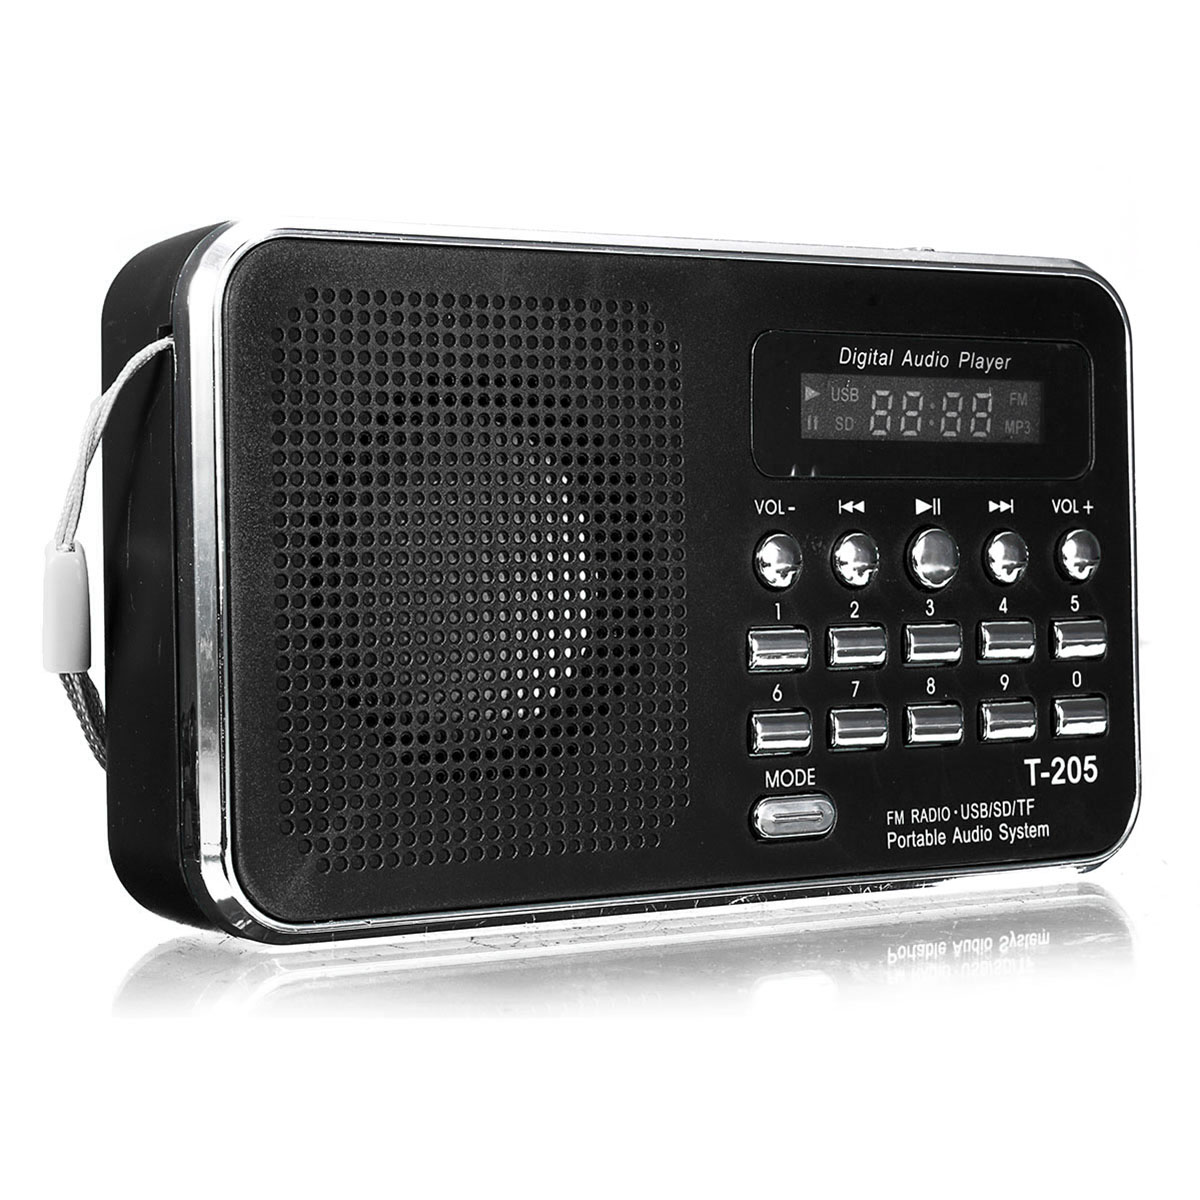 LEORY LCD Display Digital Radio FM Portable Mini Music Player MP3 WMA MMC Support TF Card USB Port Aux Audio Player